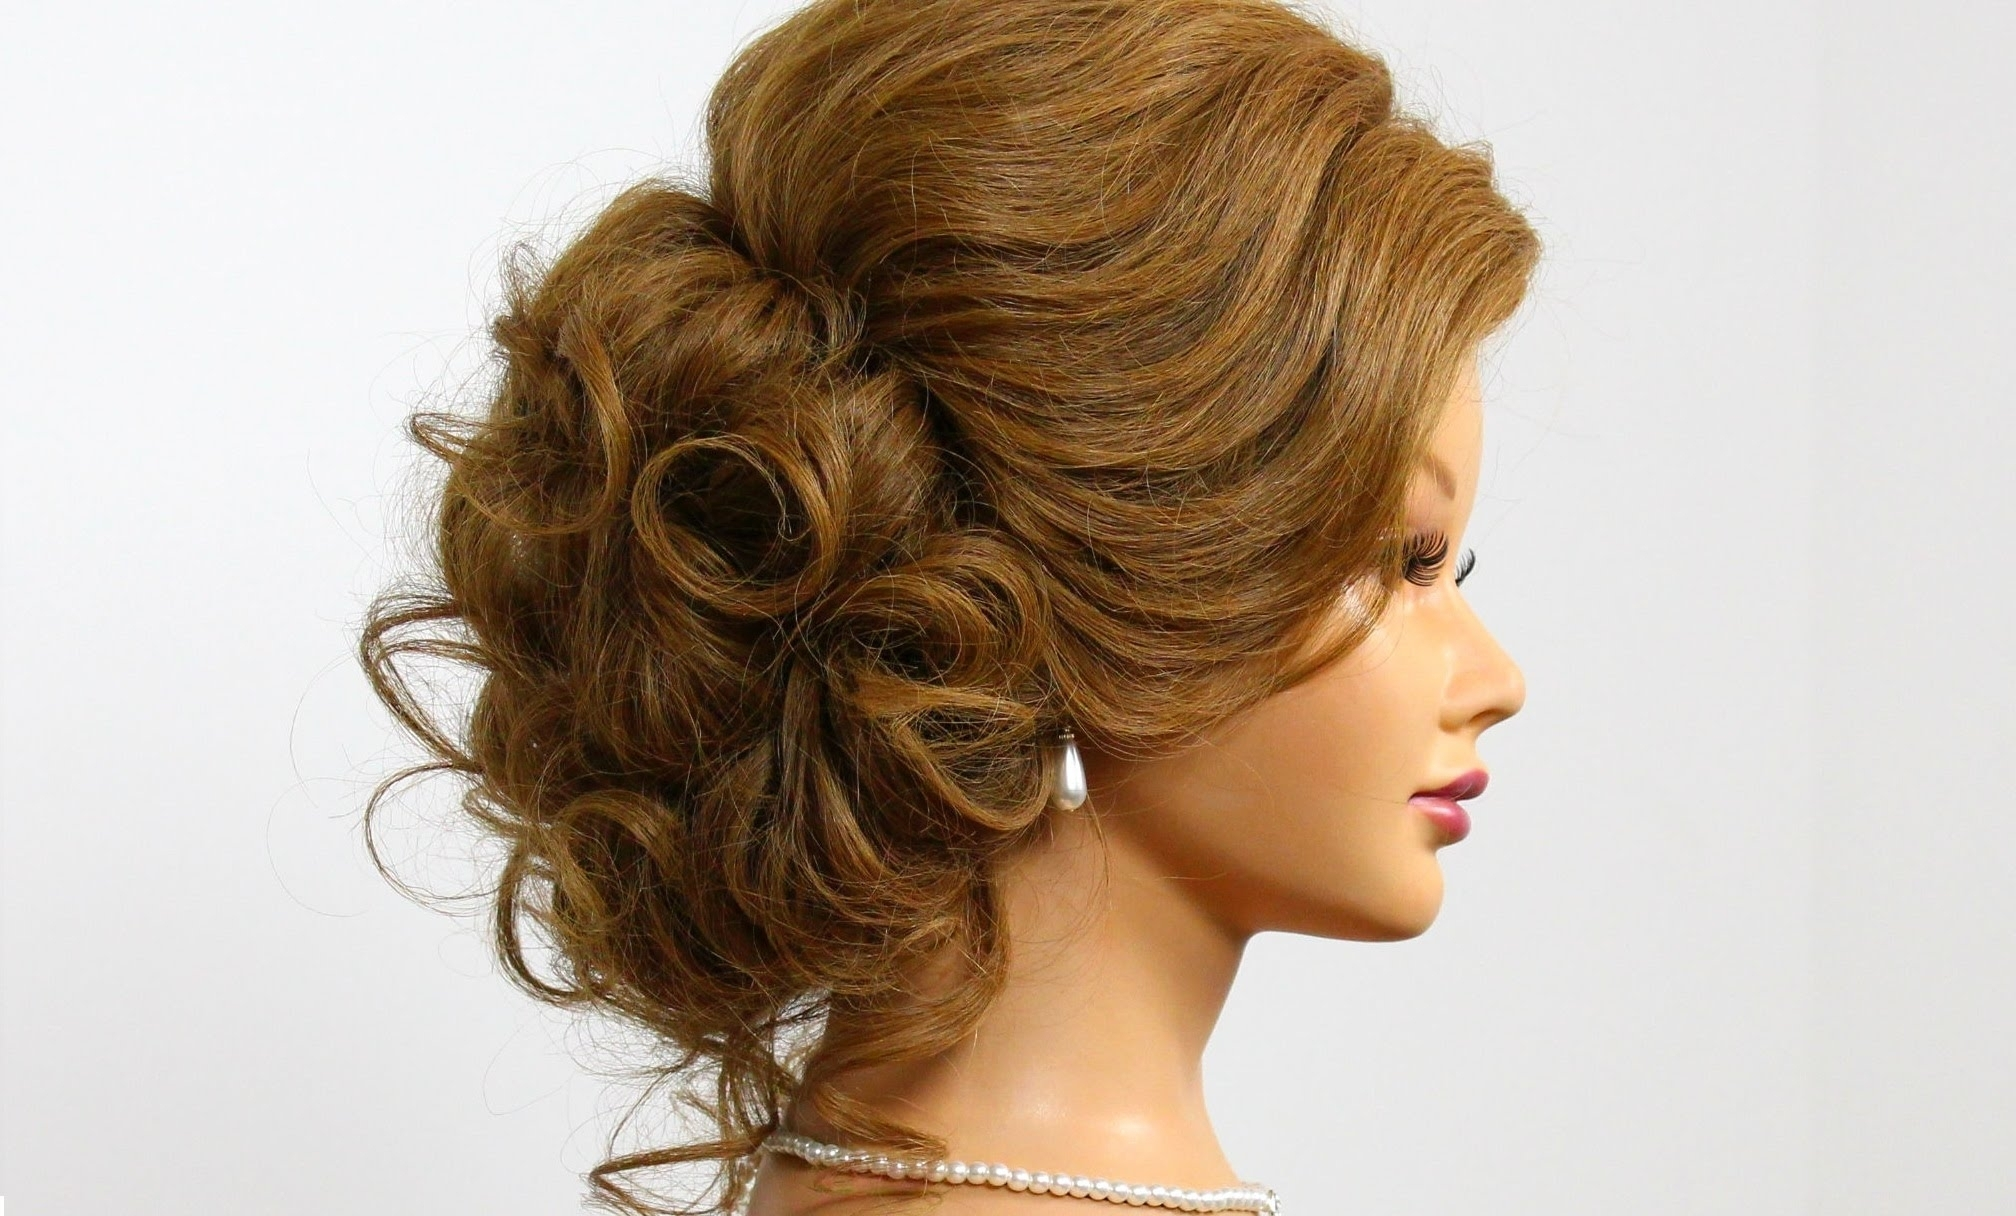 Funky Updo Hairstyles Formal Updo Hairstyles For Long Hair Funky Throughout Funky Updo Hairstyles For Long Hair (View 11 of 15)